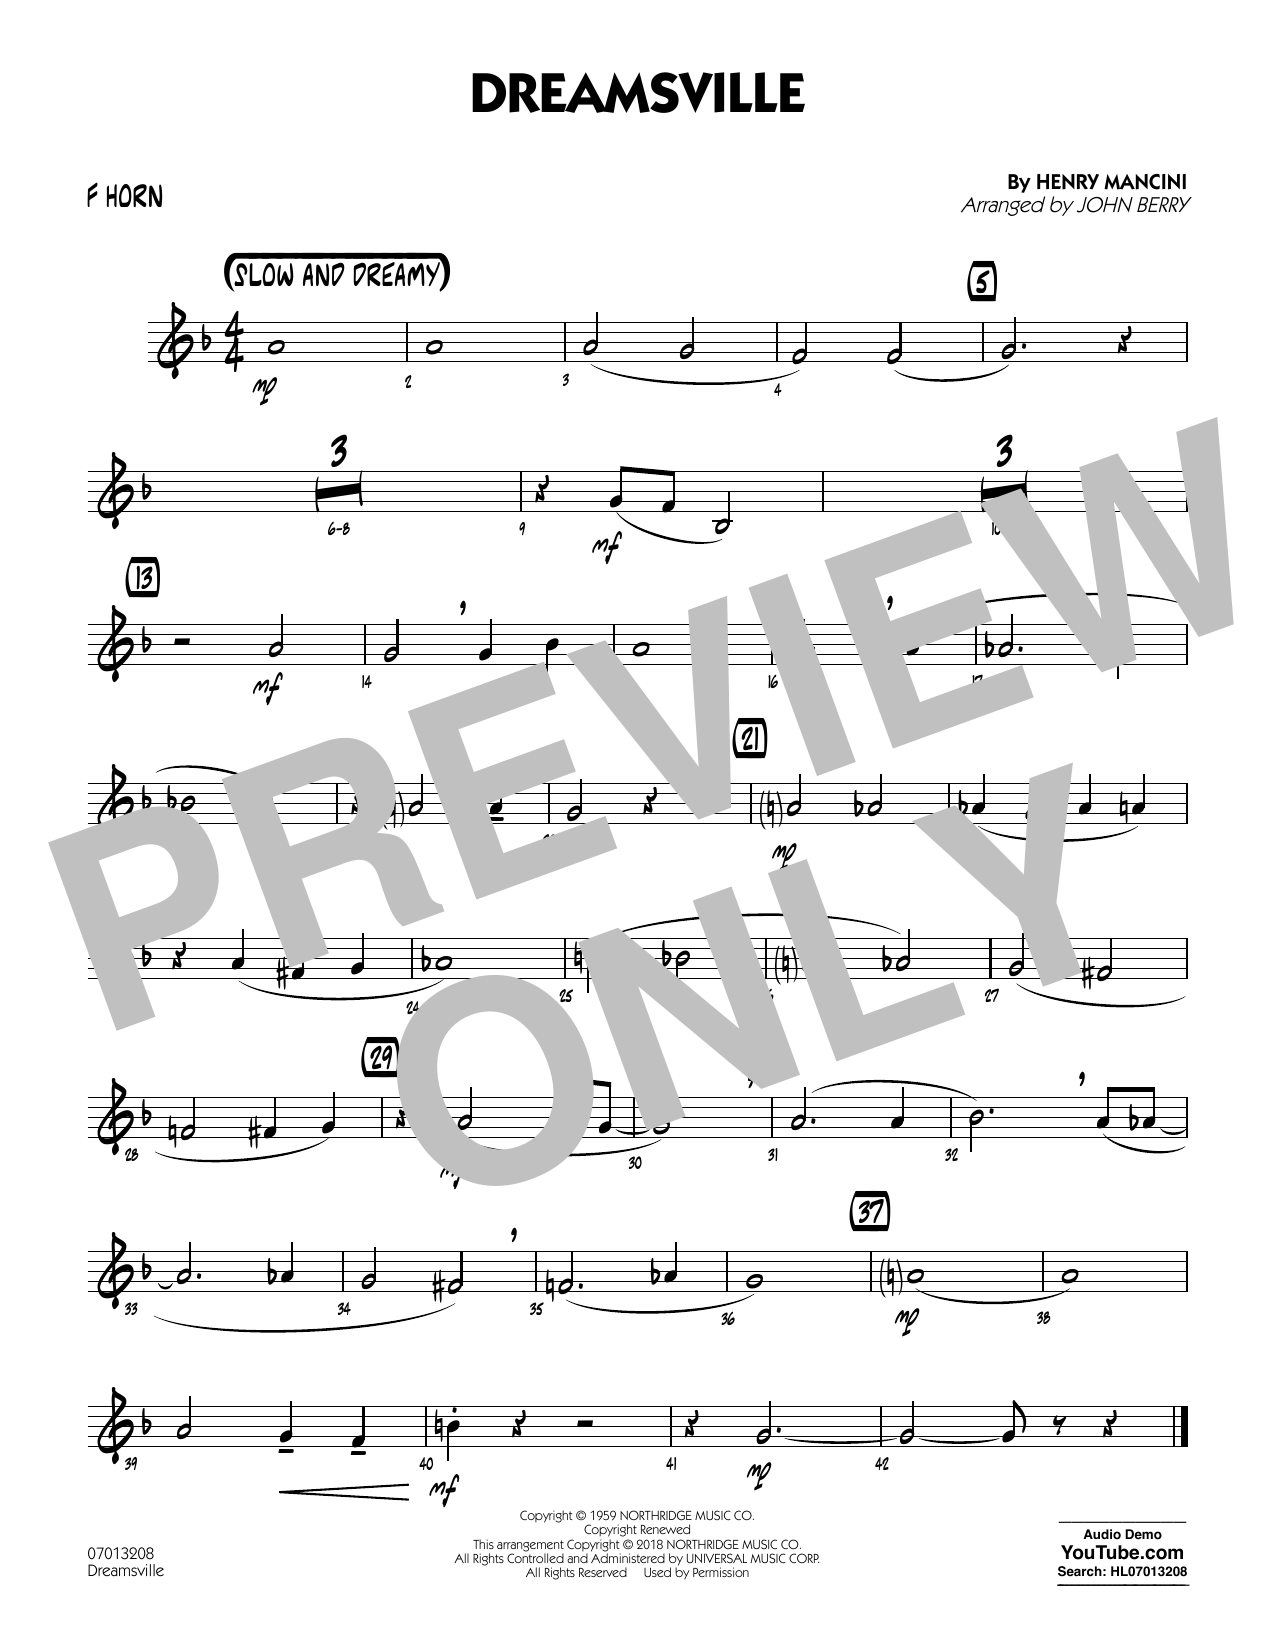 John Berry Dreamsville - F Horn sheet music notes and chords. Download Printable PDF.